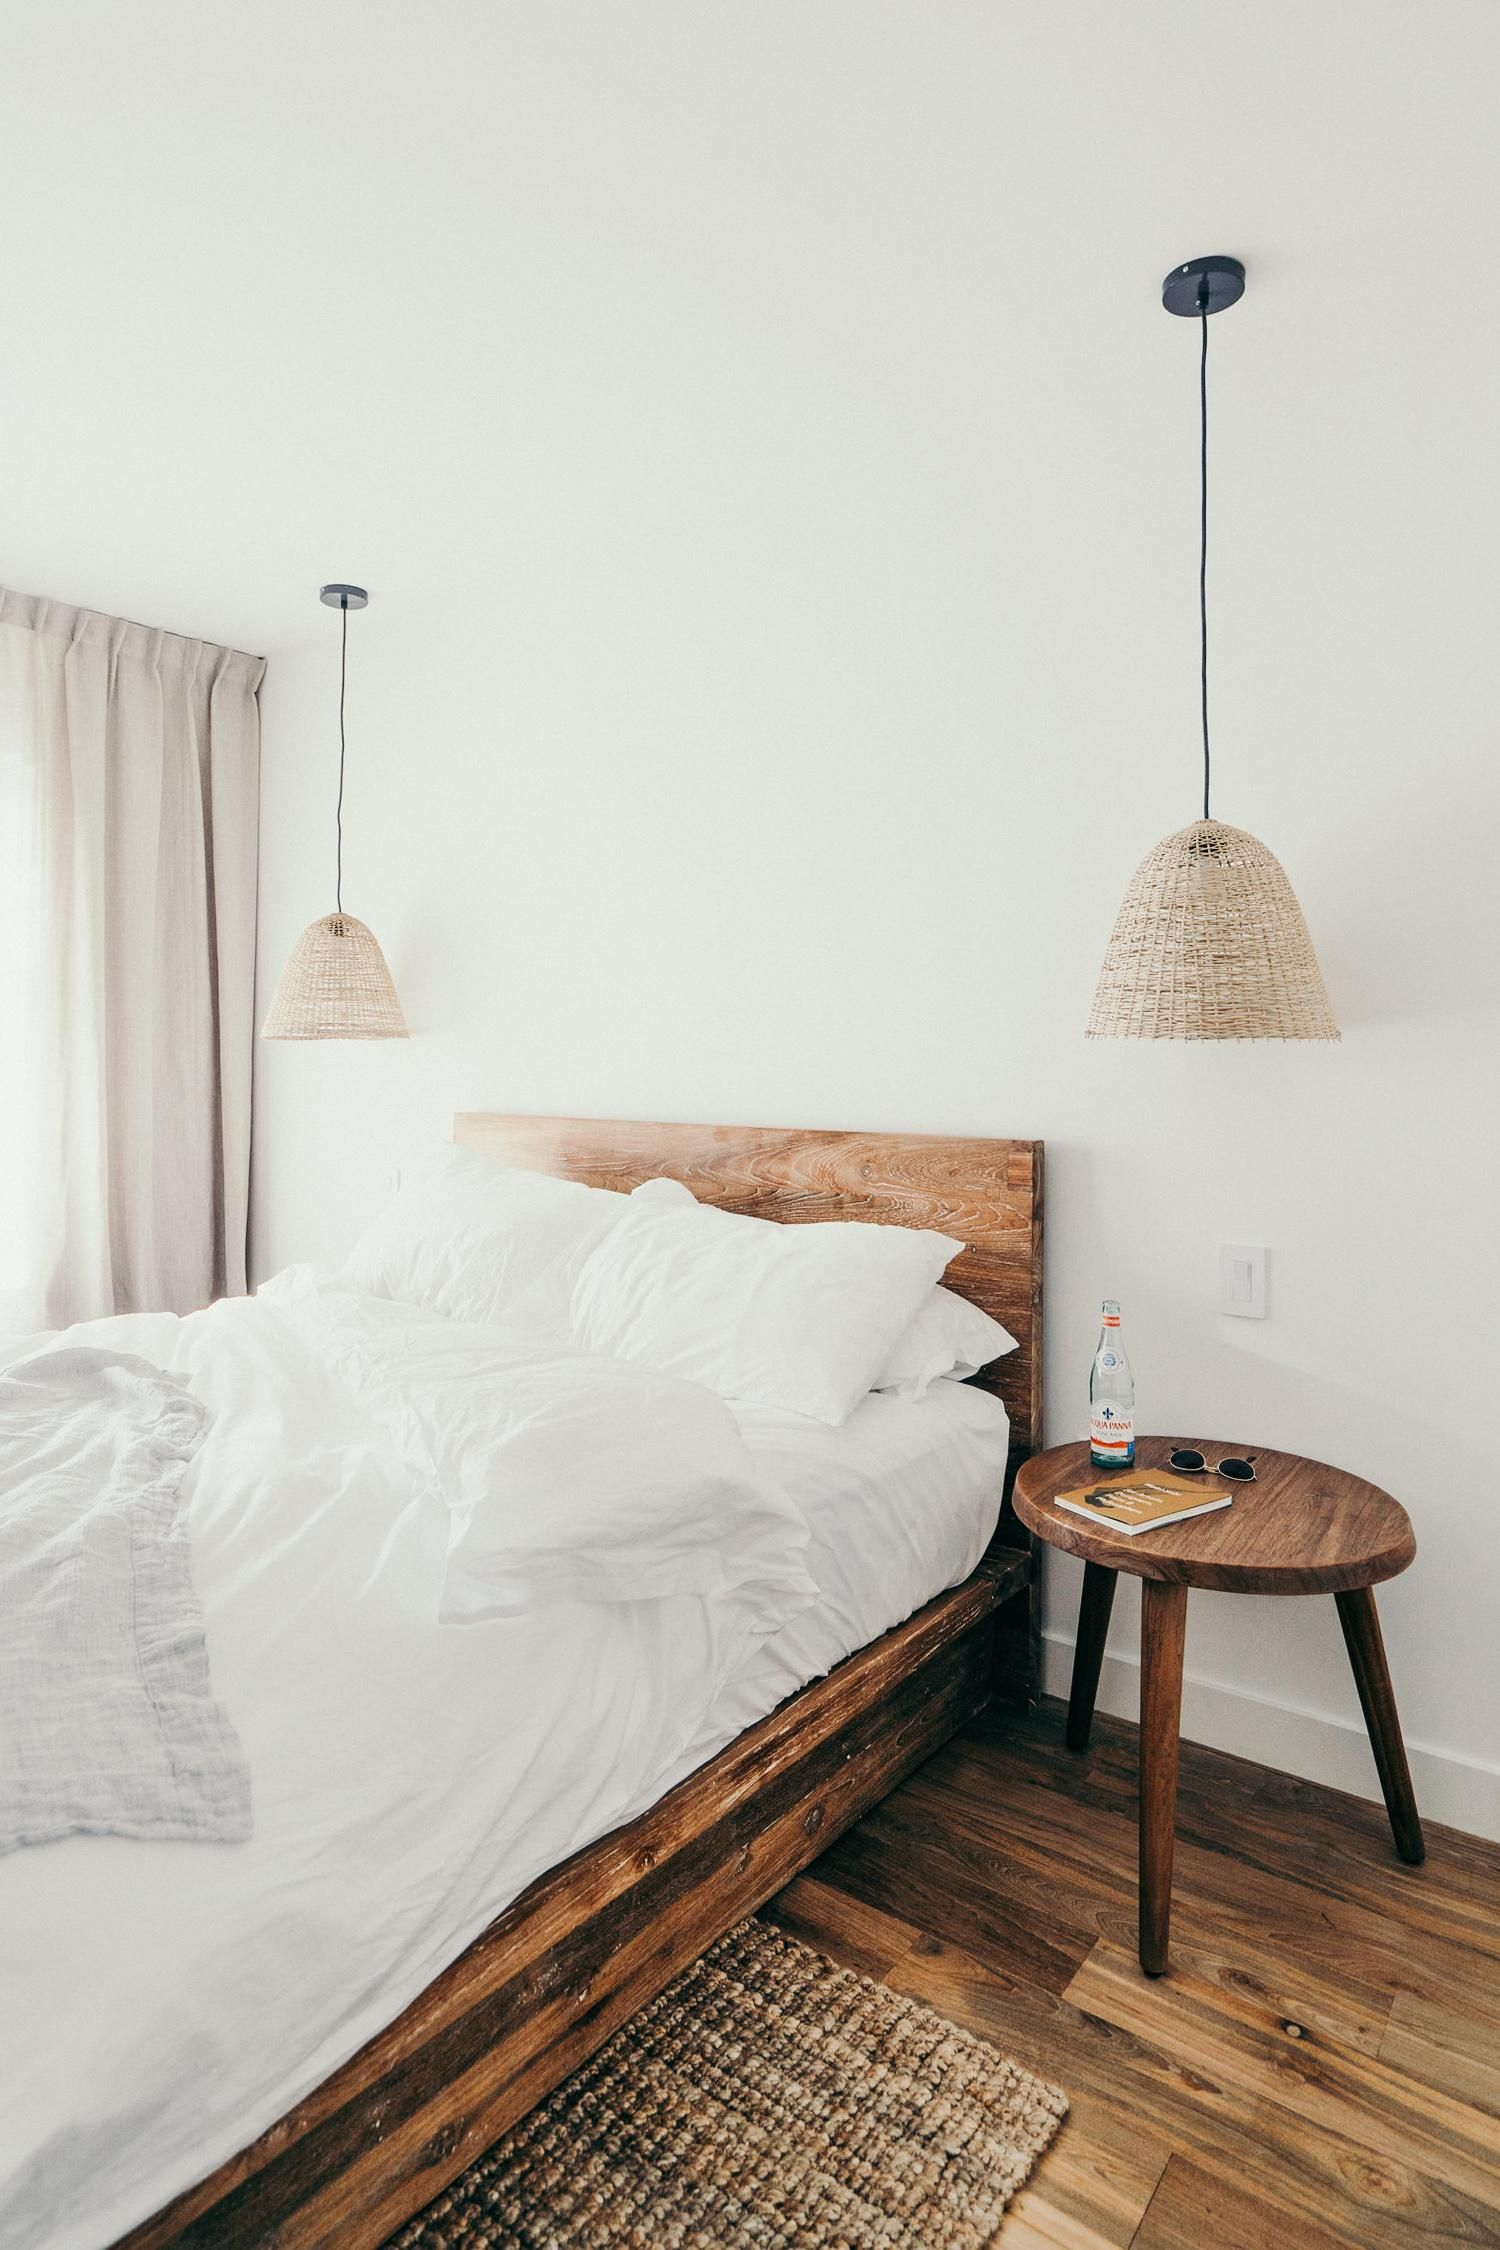 Motel Room Interiors: 2018's Hottest New Hotel Openings Across The Globe In 2020